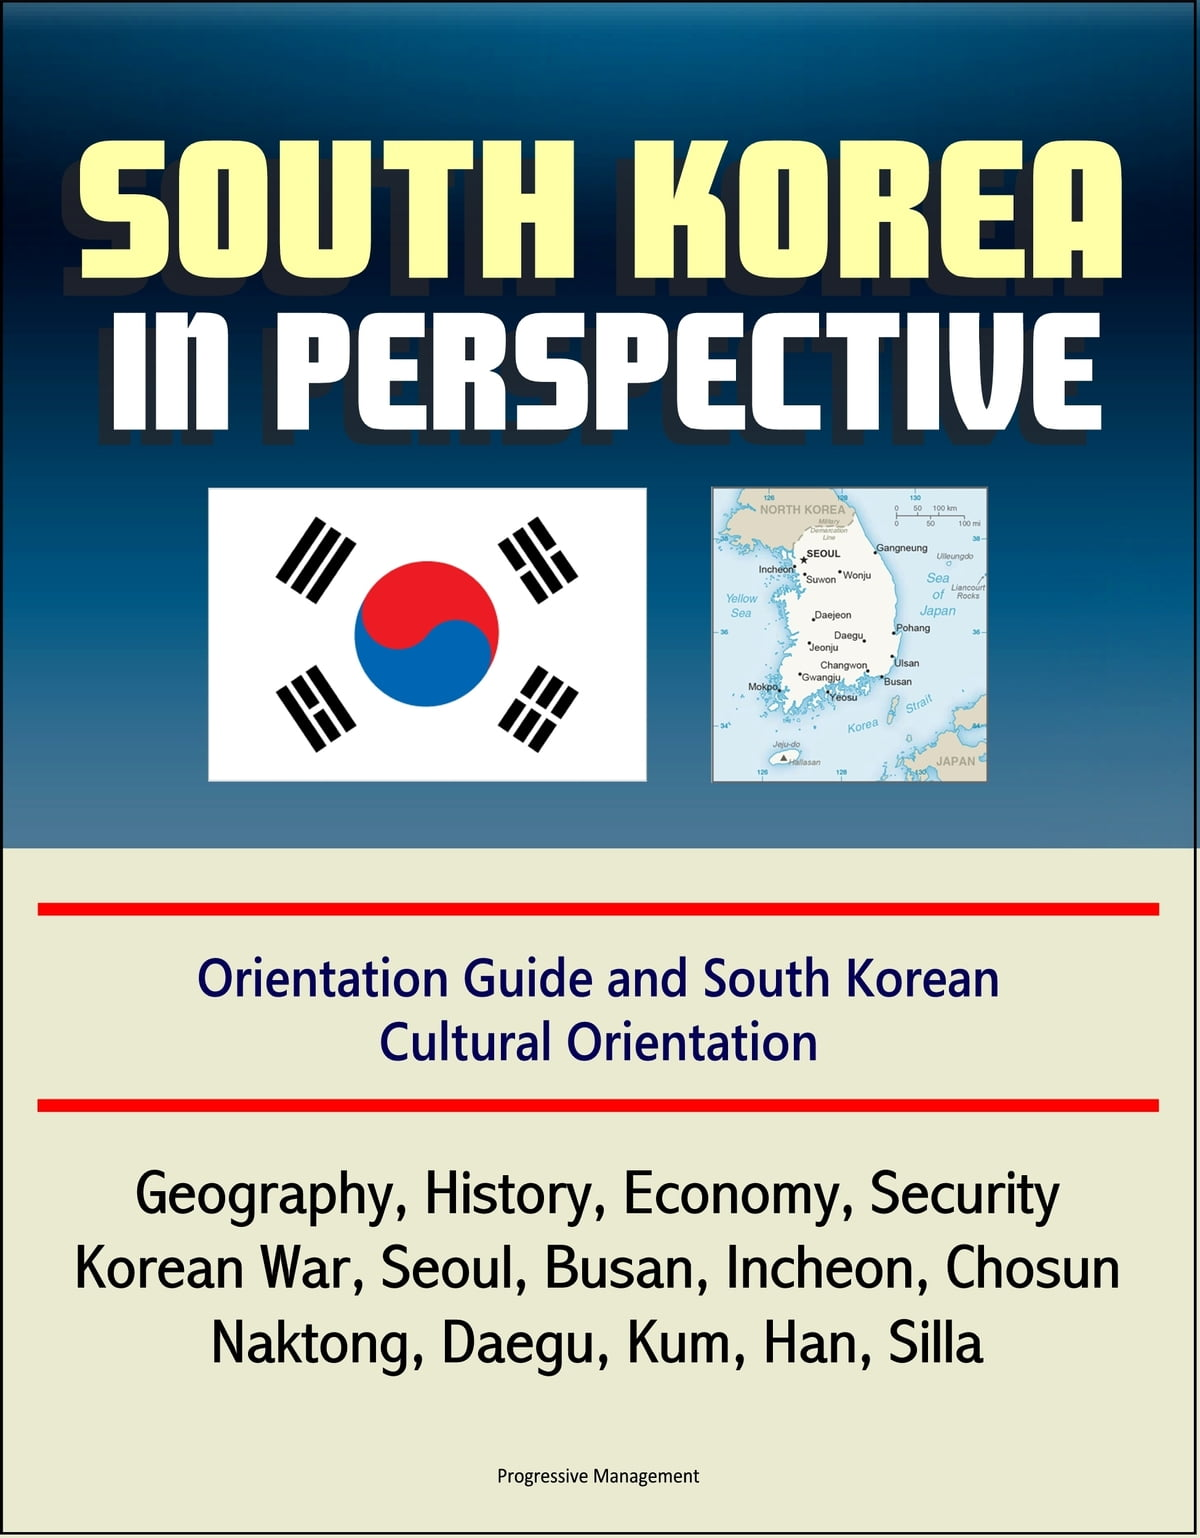 Avis Cuisine Hacker 2018 south korea in perspective: orientation guide and south korean cultural  orientation: geography, history, economy, security, korean war, seoul,  busan,